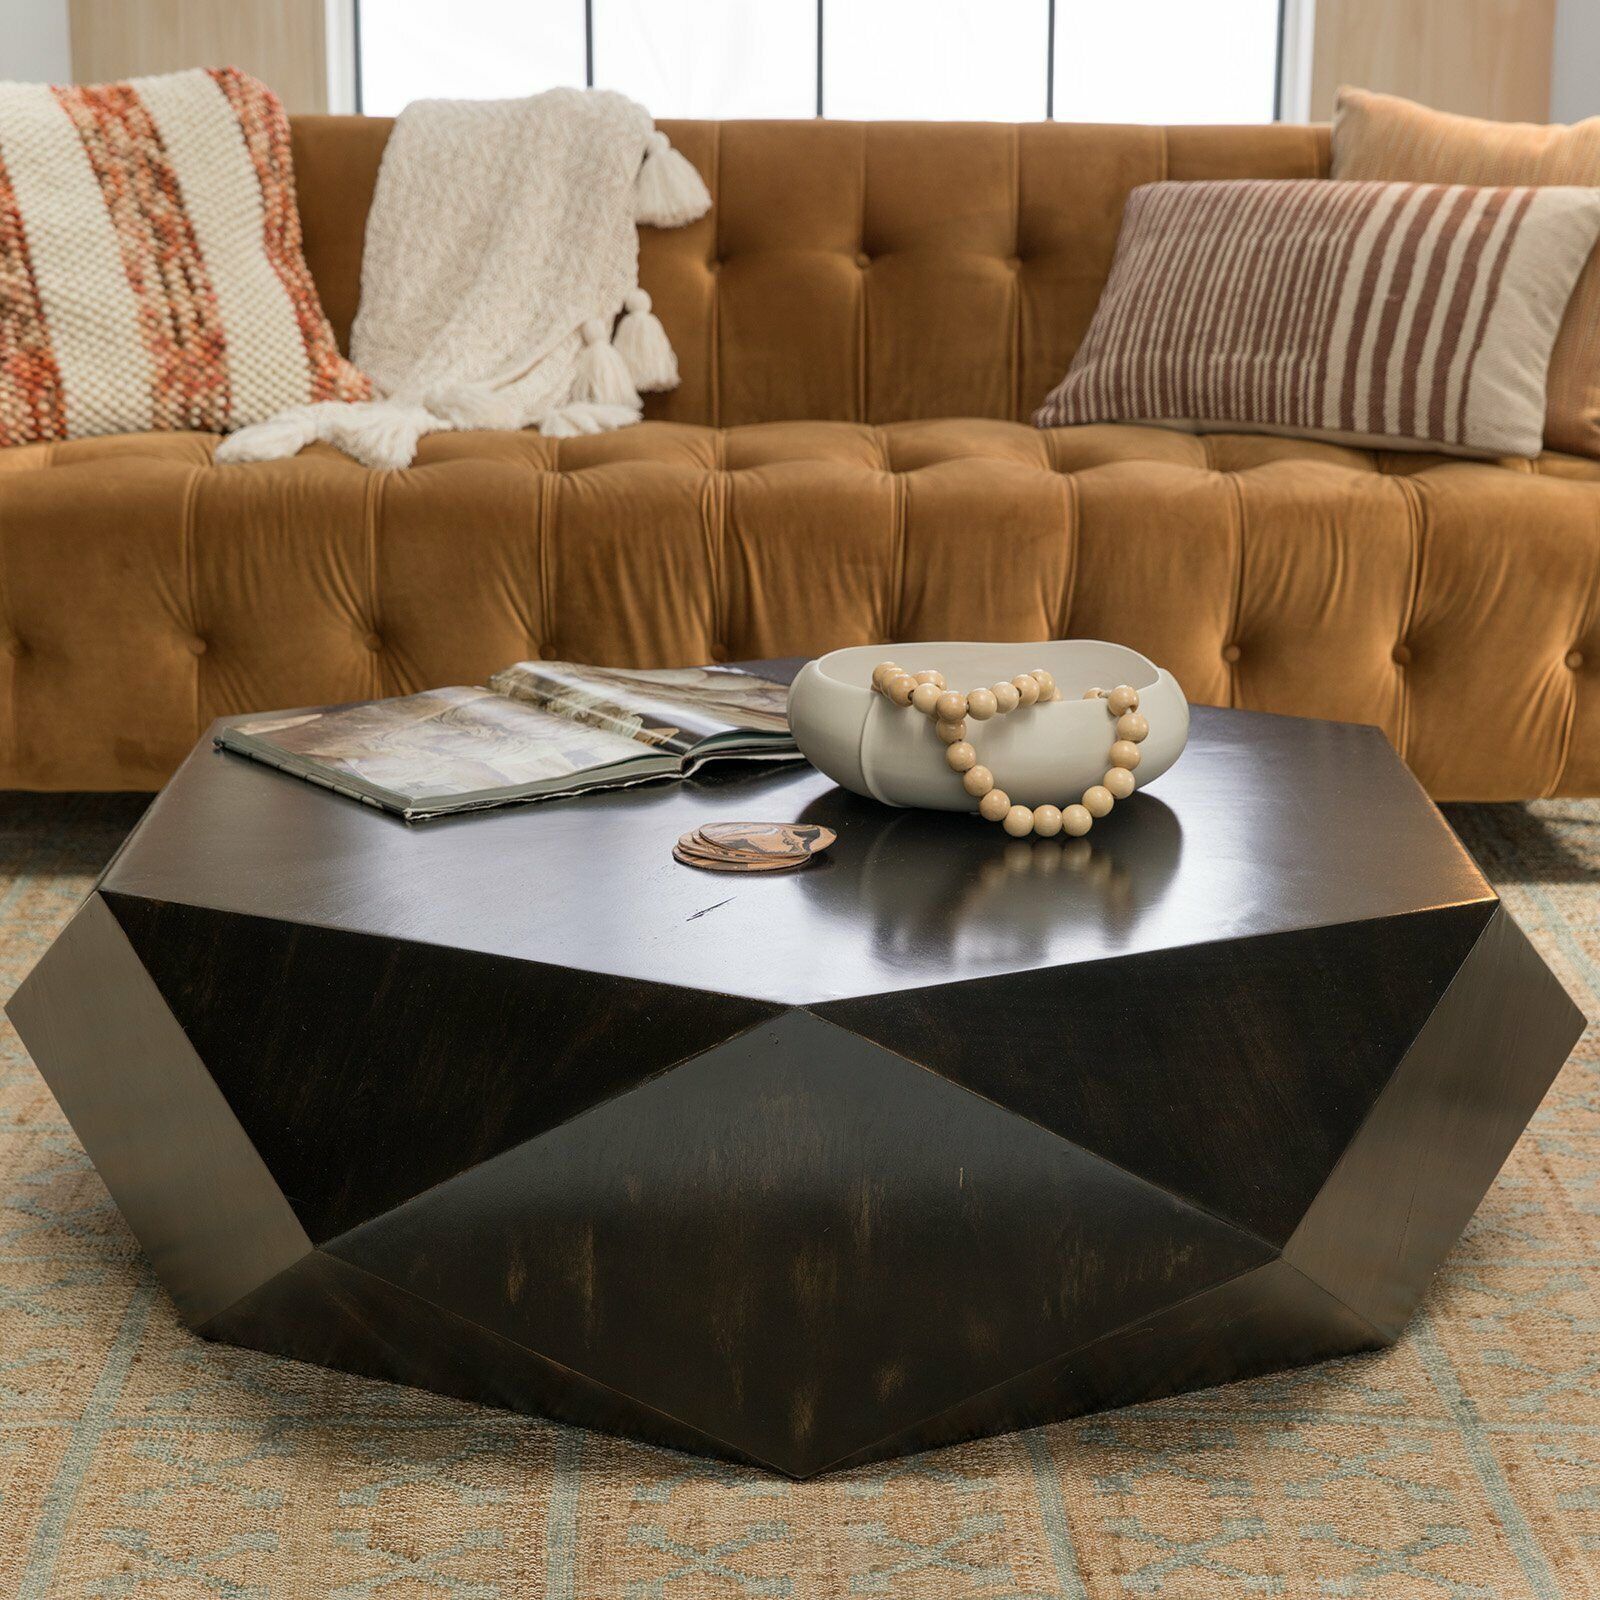 Faceted Large Round Light Wood Coffee Table Modern Geometric Block